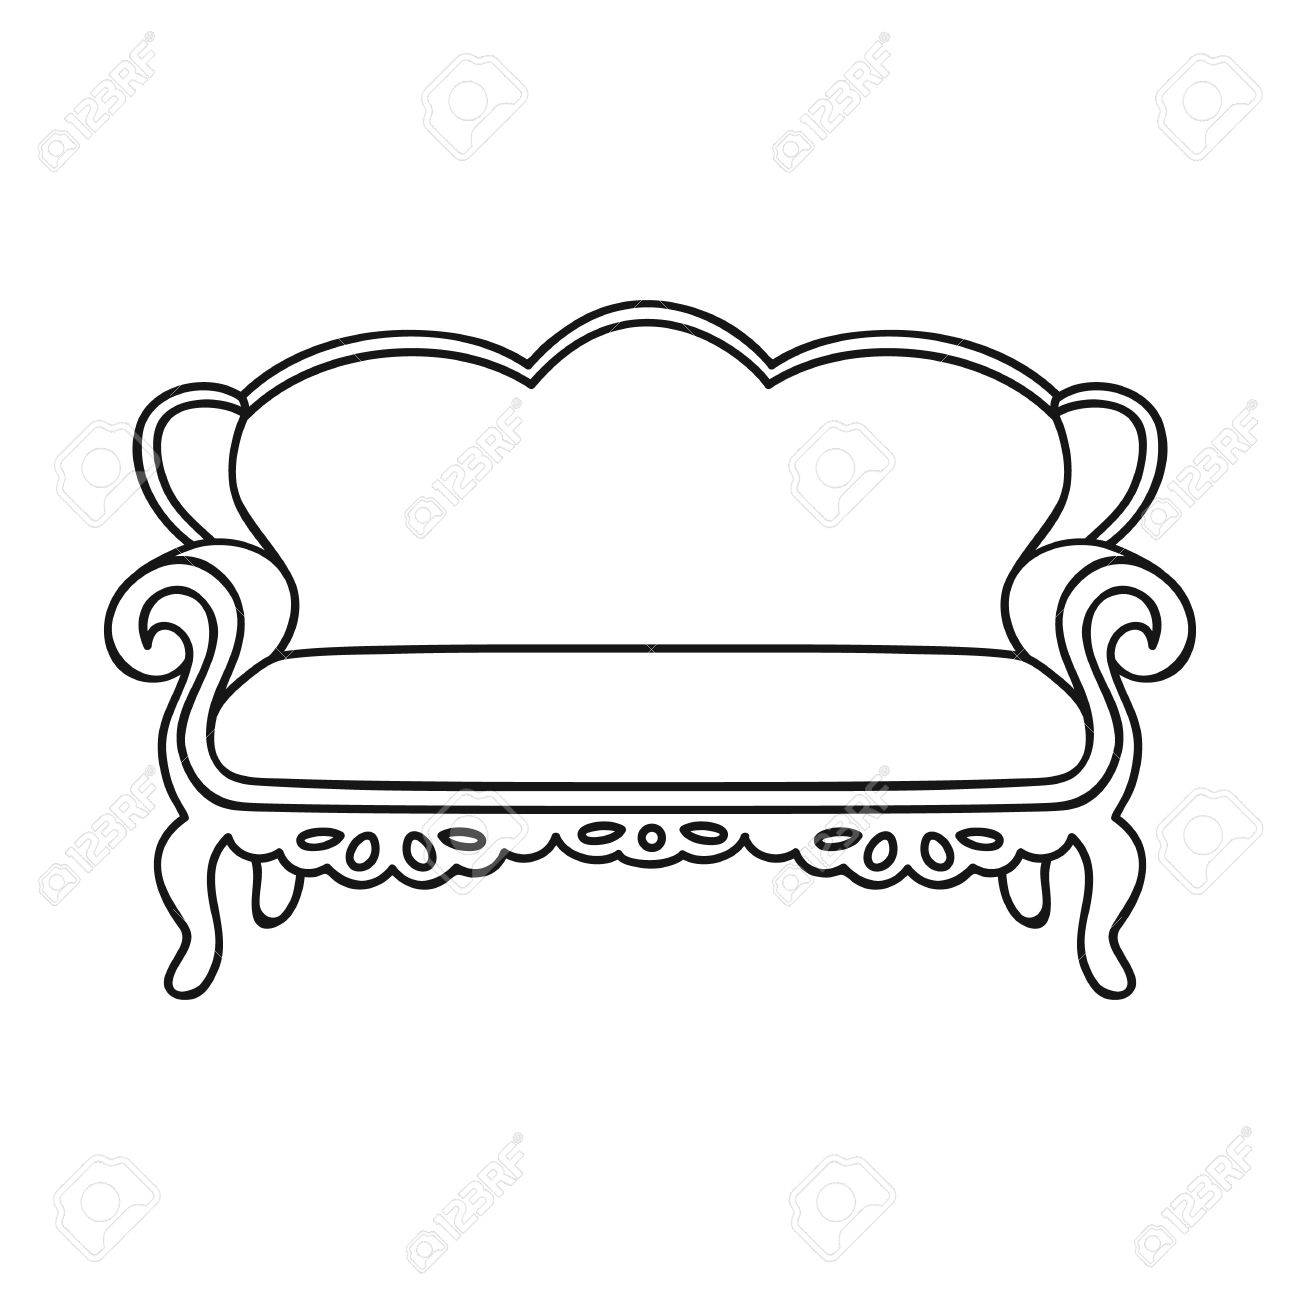 Vintage Sofa Icon In Outline Style Isolated On White Background Royalty Free Cliparts Vectors And Stock Illustration Image 67722447